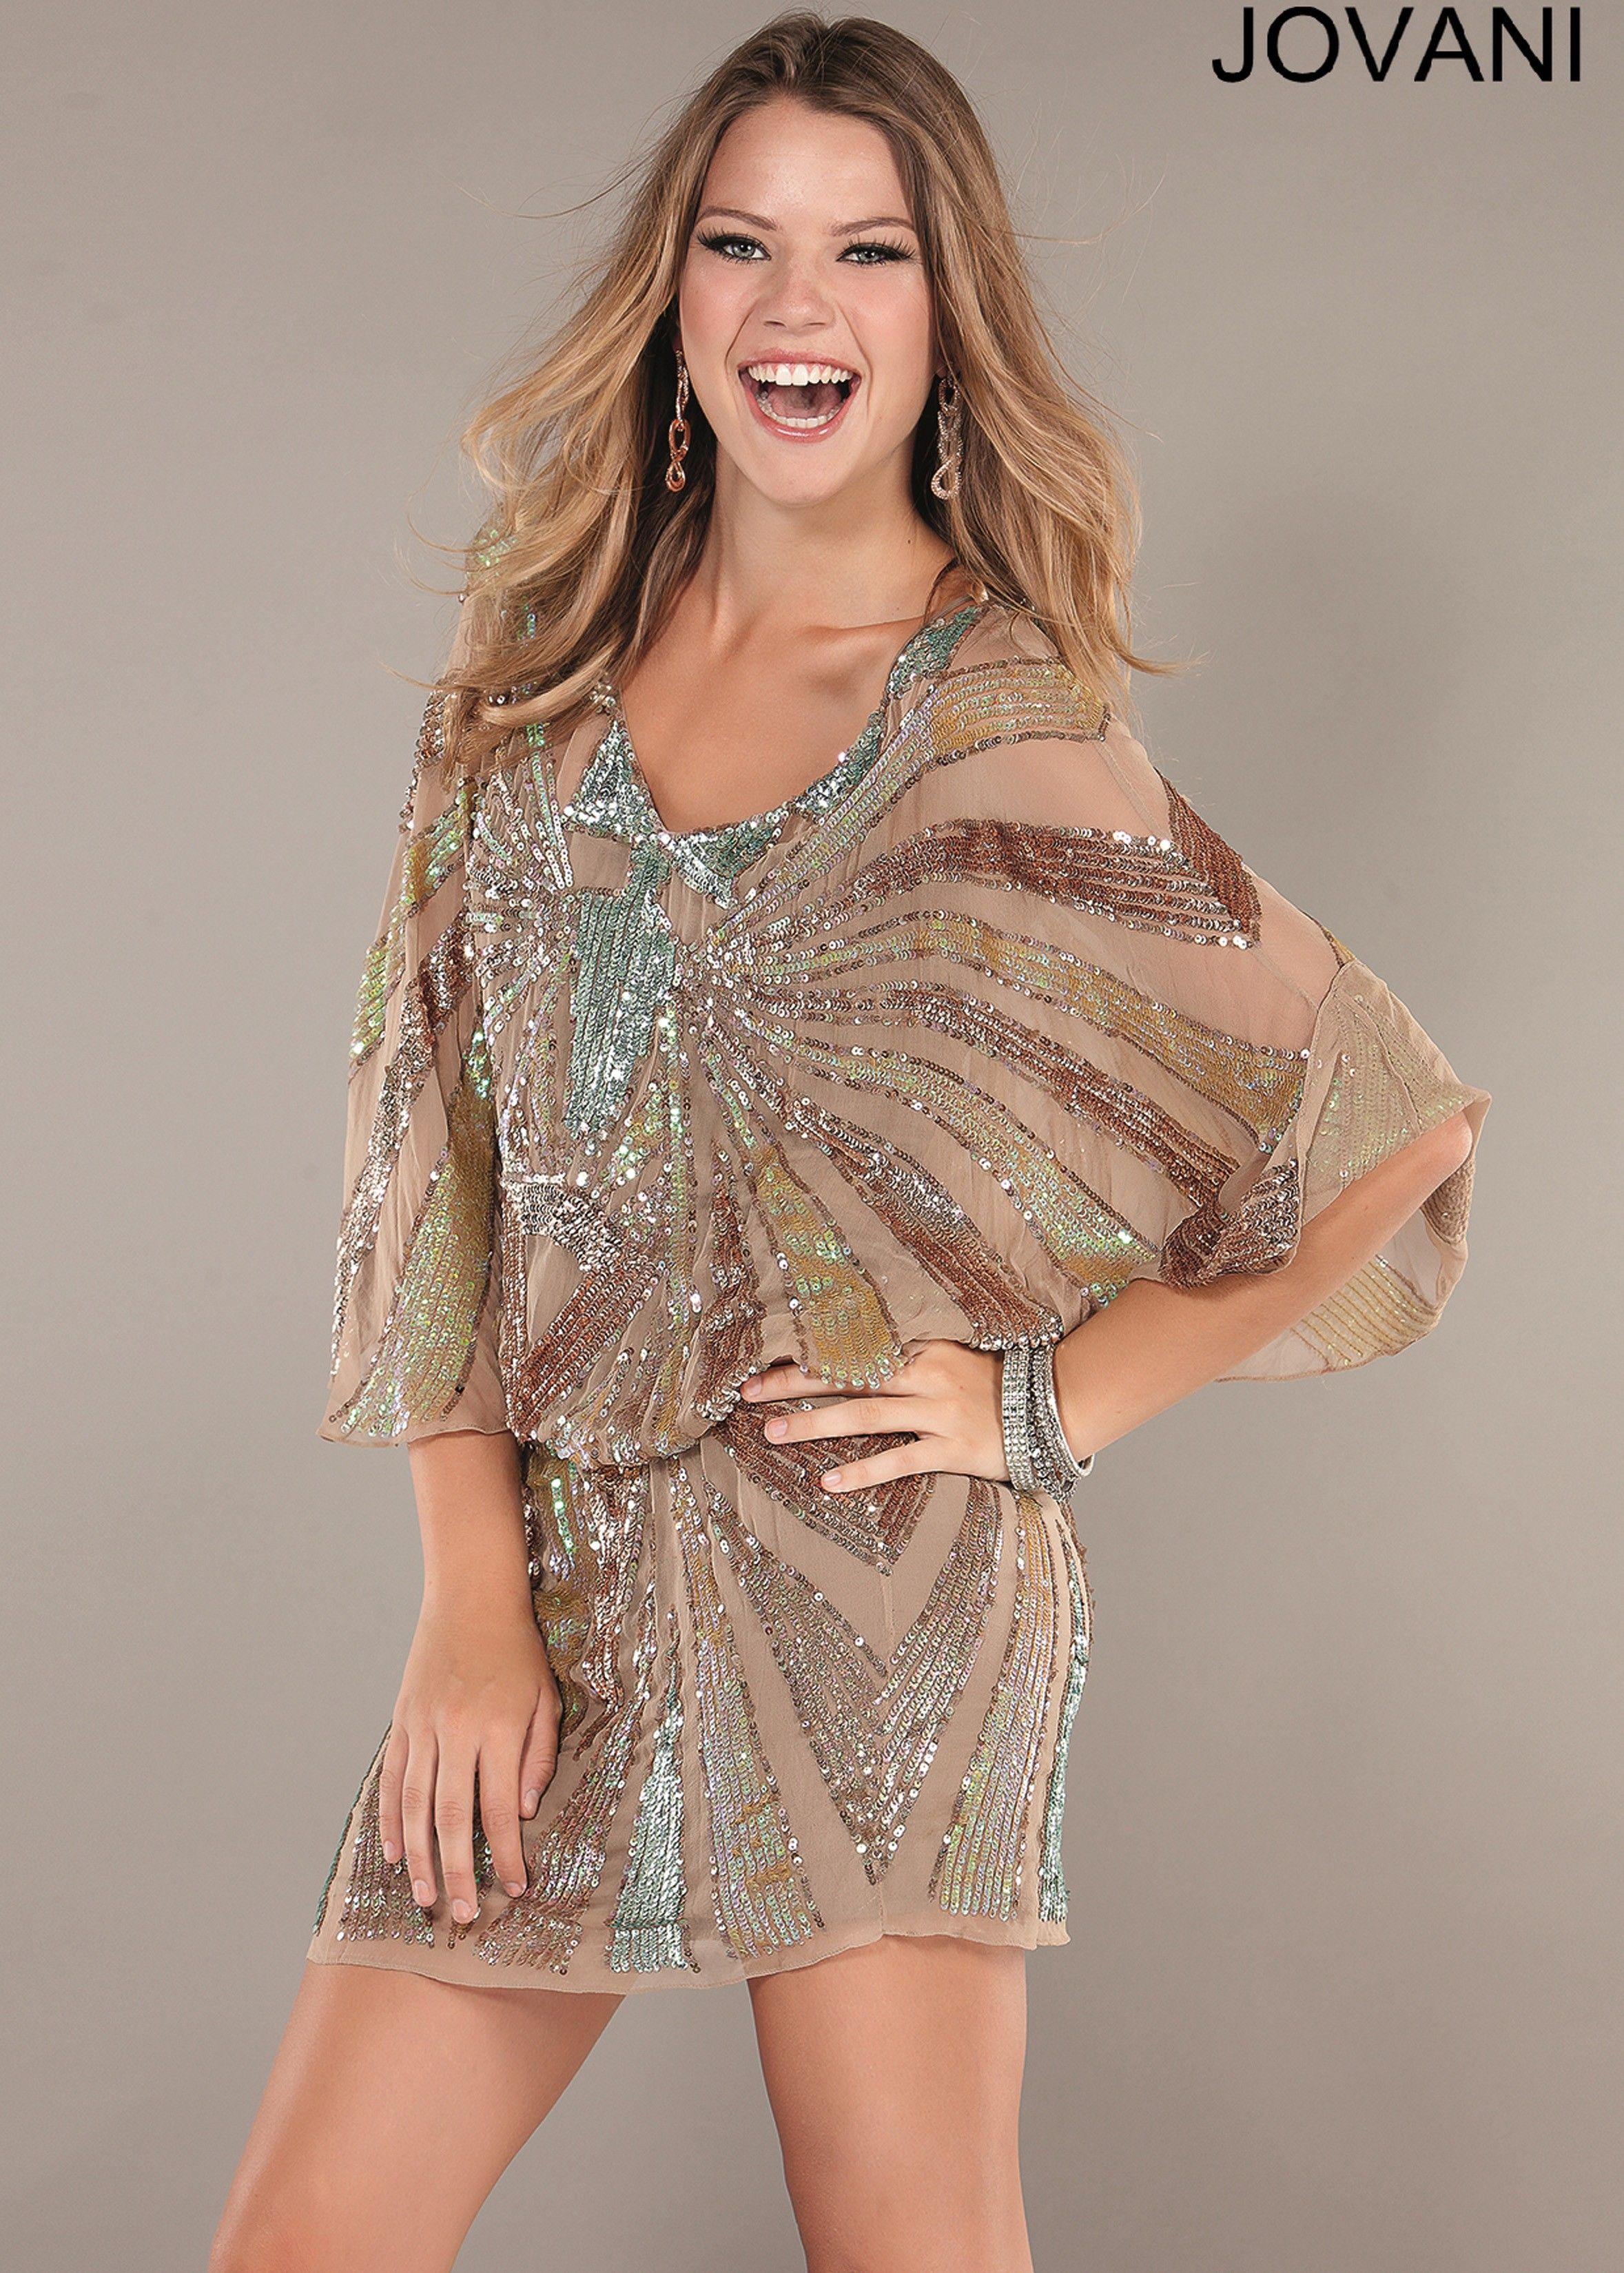 Jovani 1521 Brown Cocktail Dress from rissyroos.com | Dresses ...